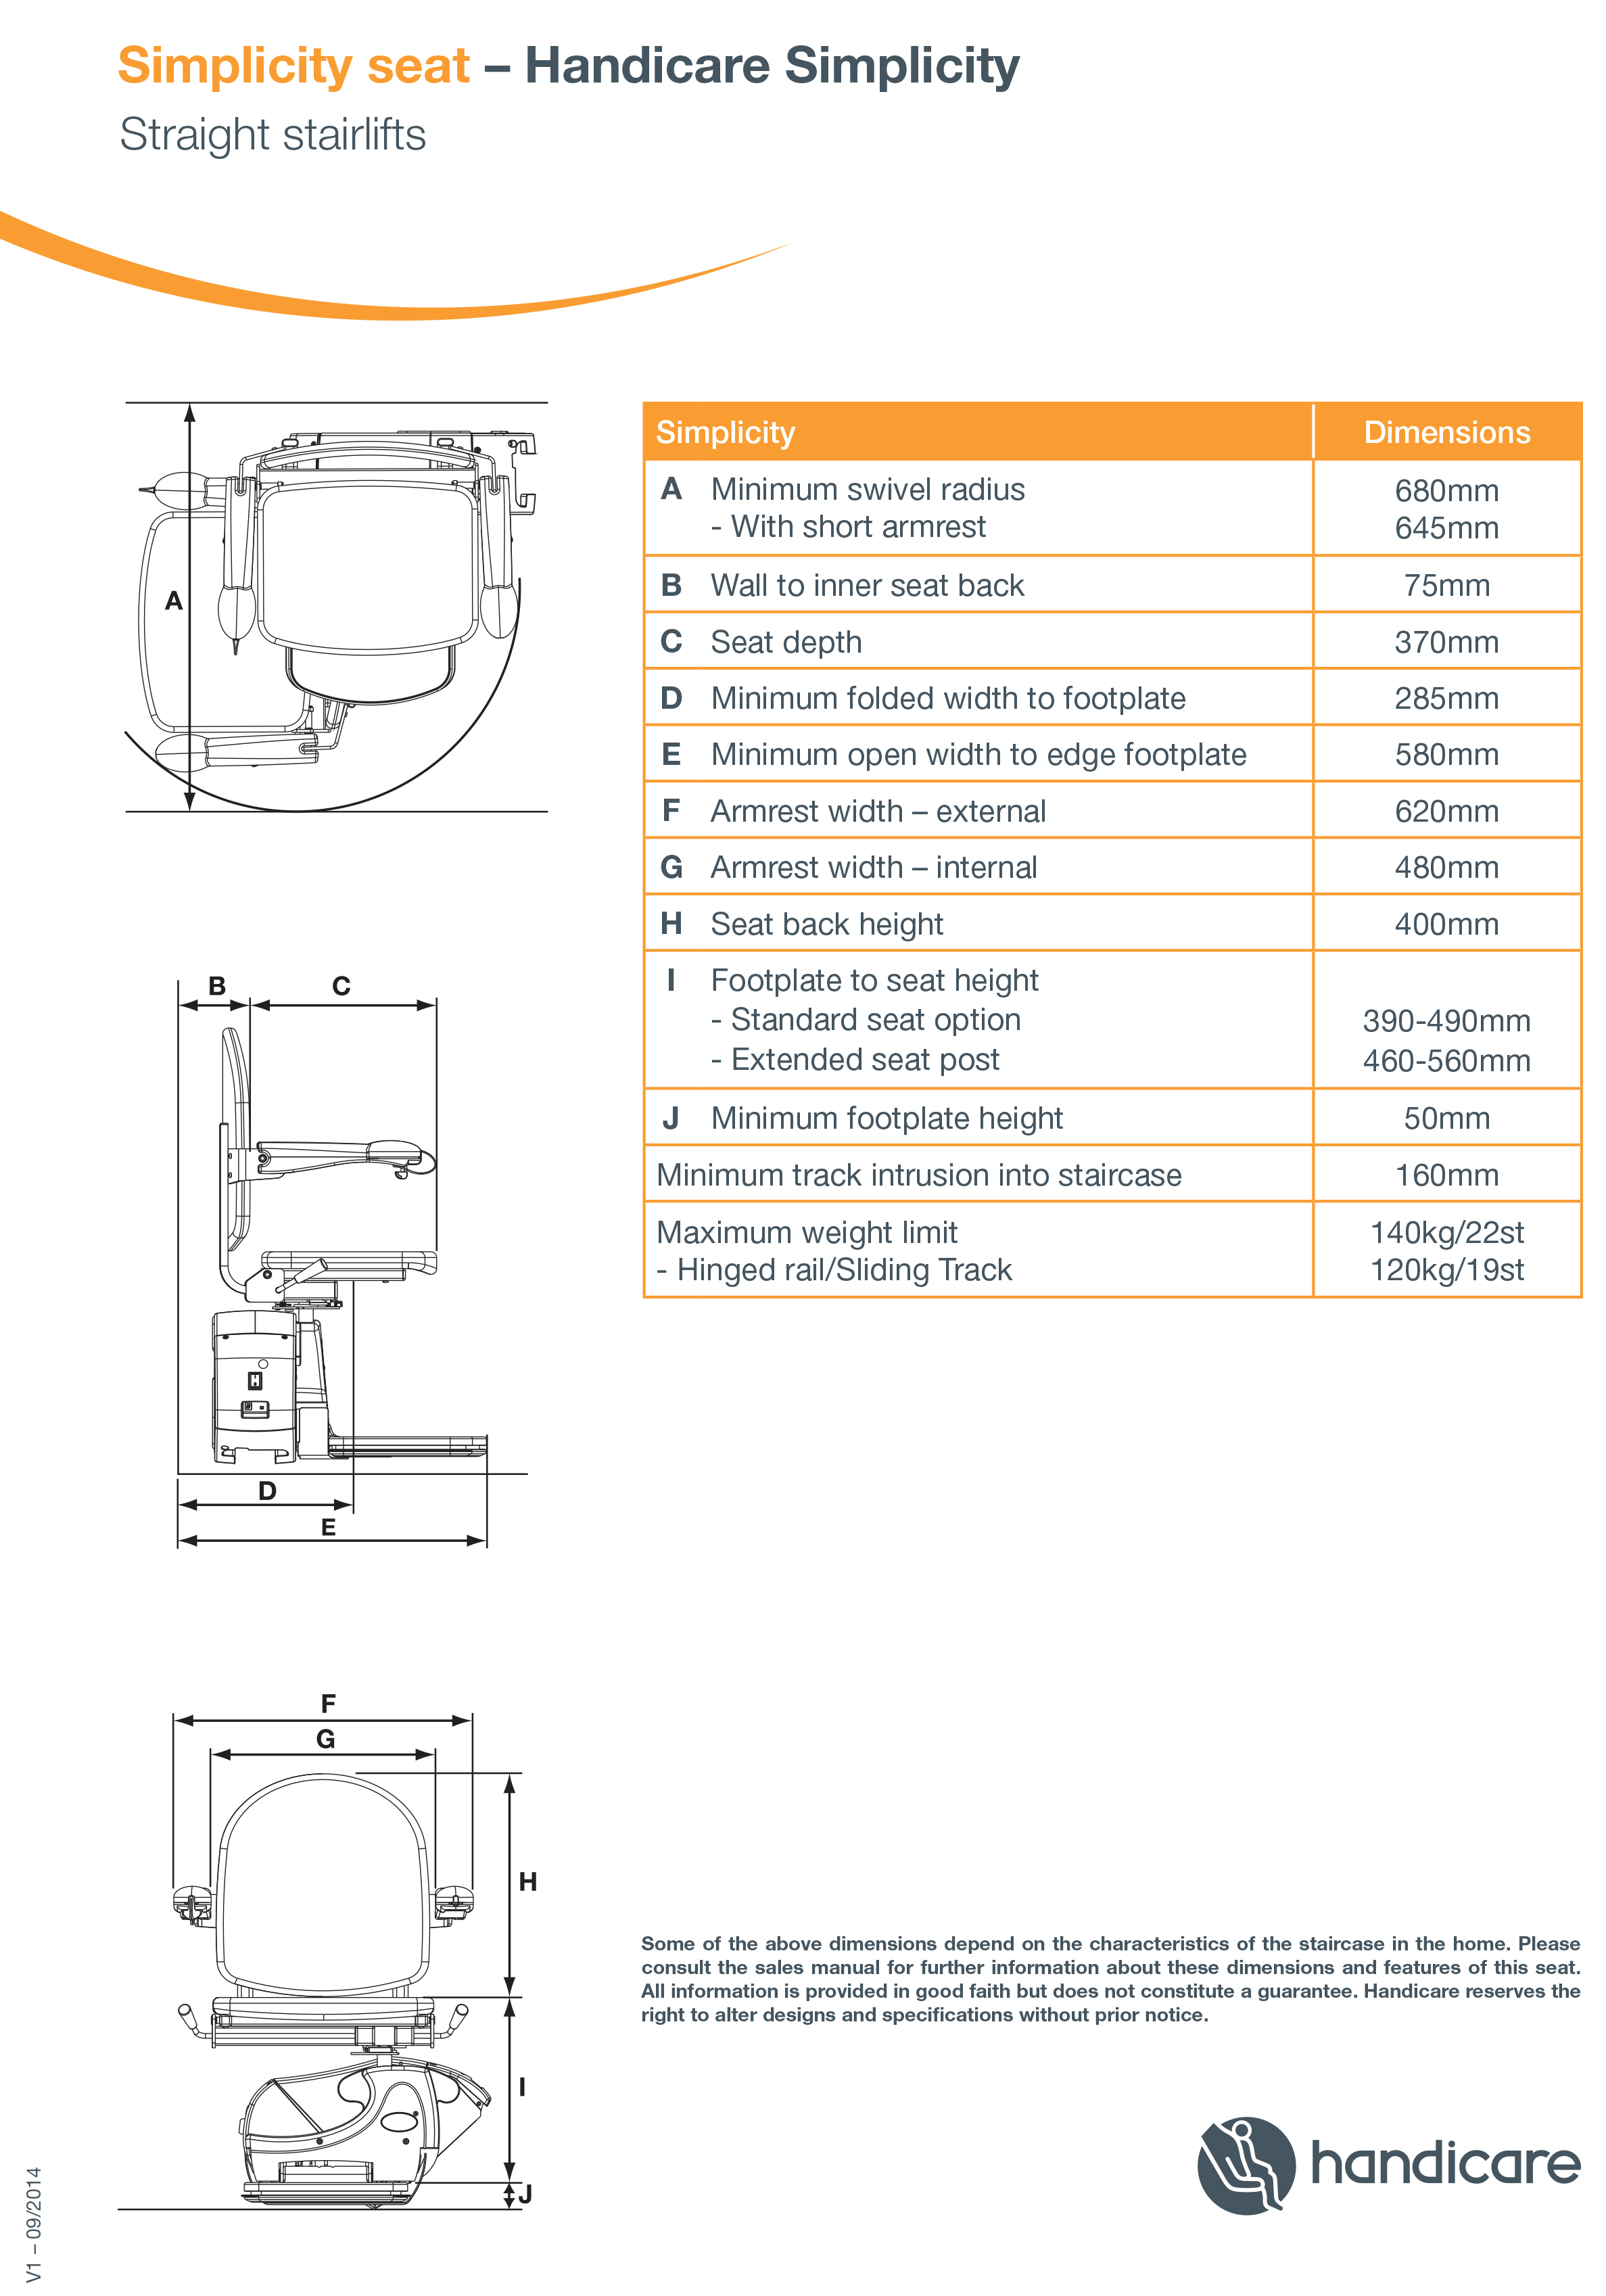 handicare simplicity straight stairlift dimensions